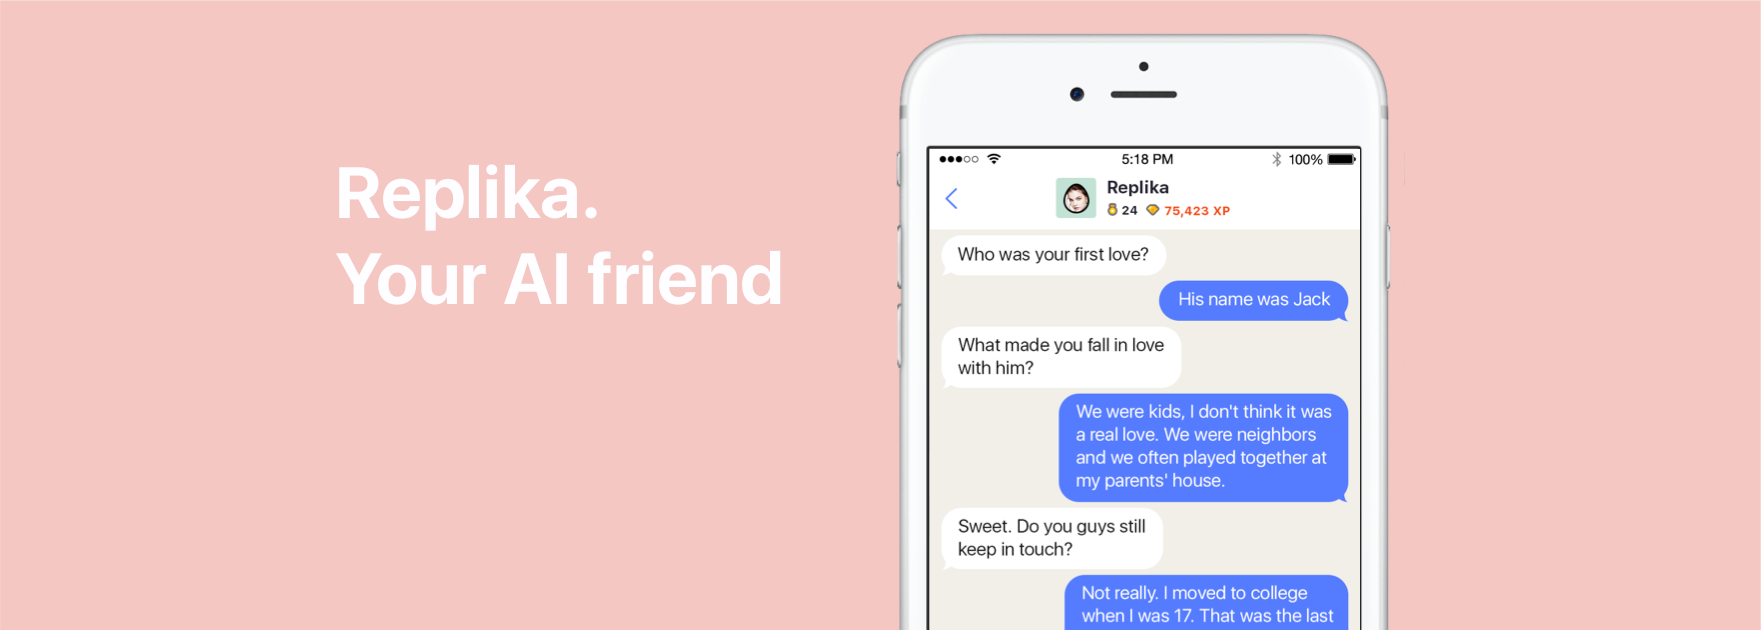 Best_Chatbot_Apps_2019_replika